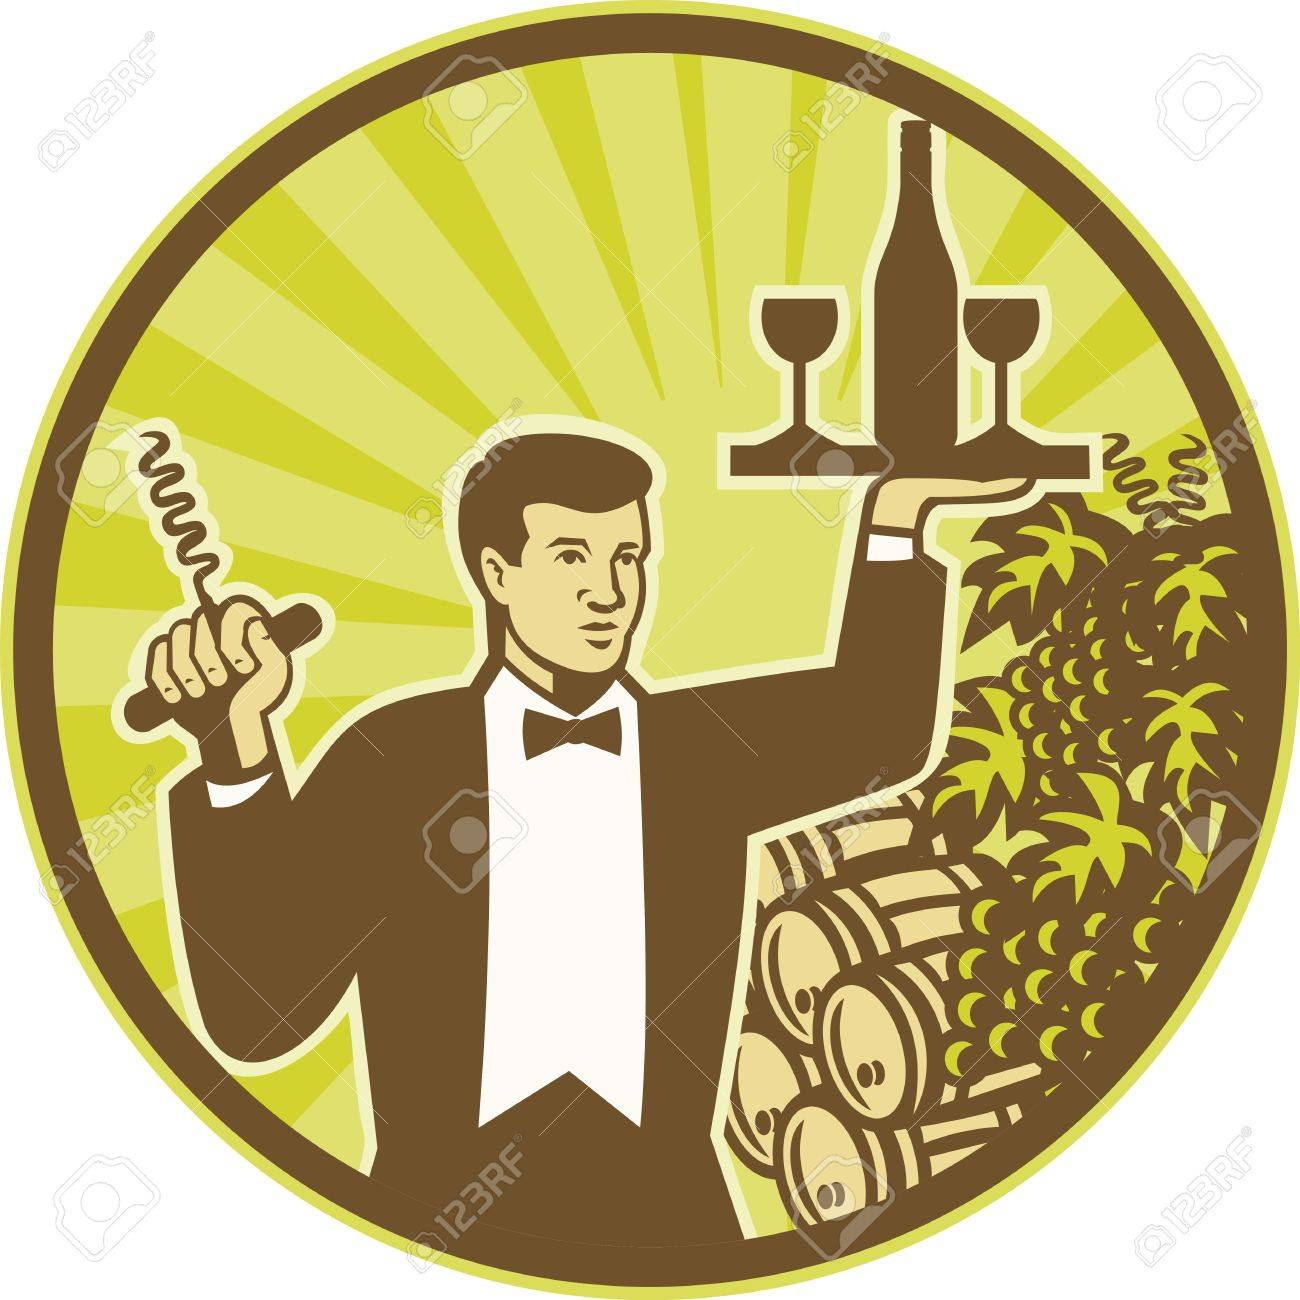 Illustration of a waiter holding cork screw and serving wine bottle and glass on platter with wine barrel and grape vine and fruit in background set inside circle retro style Stock Vector - 16392915